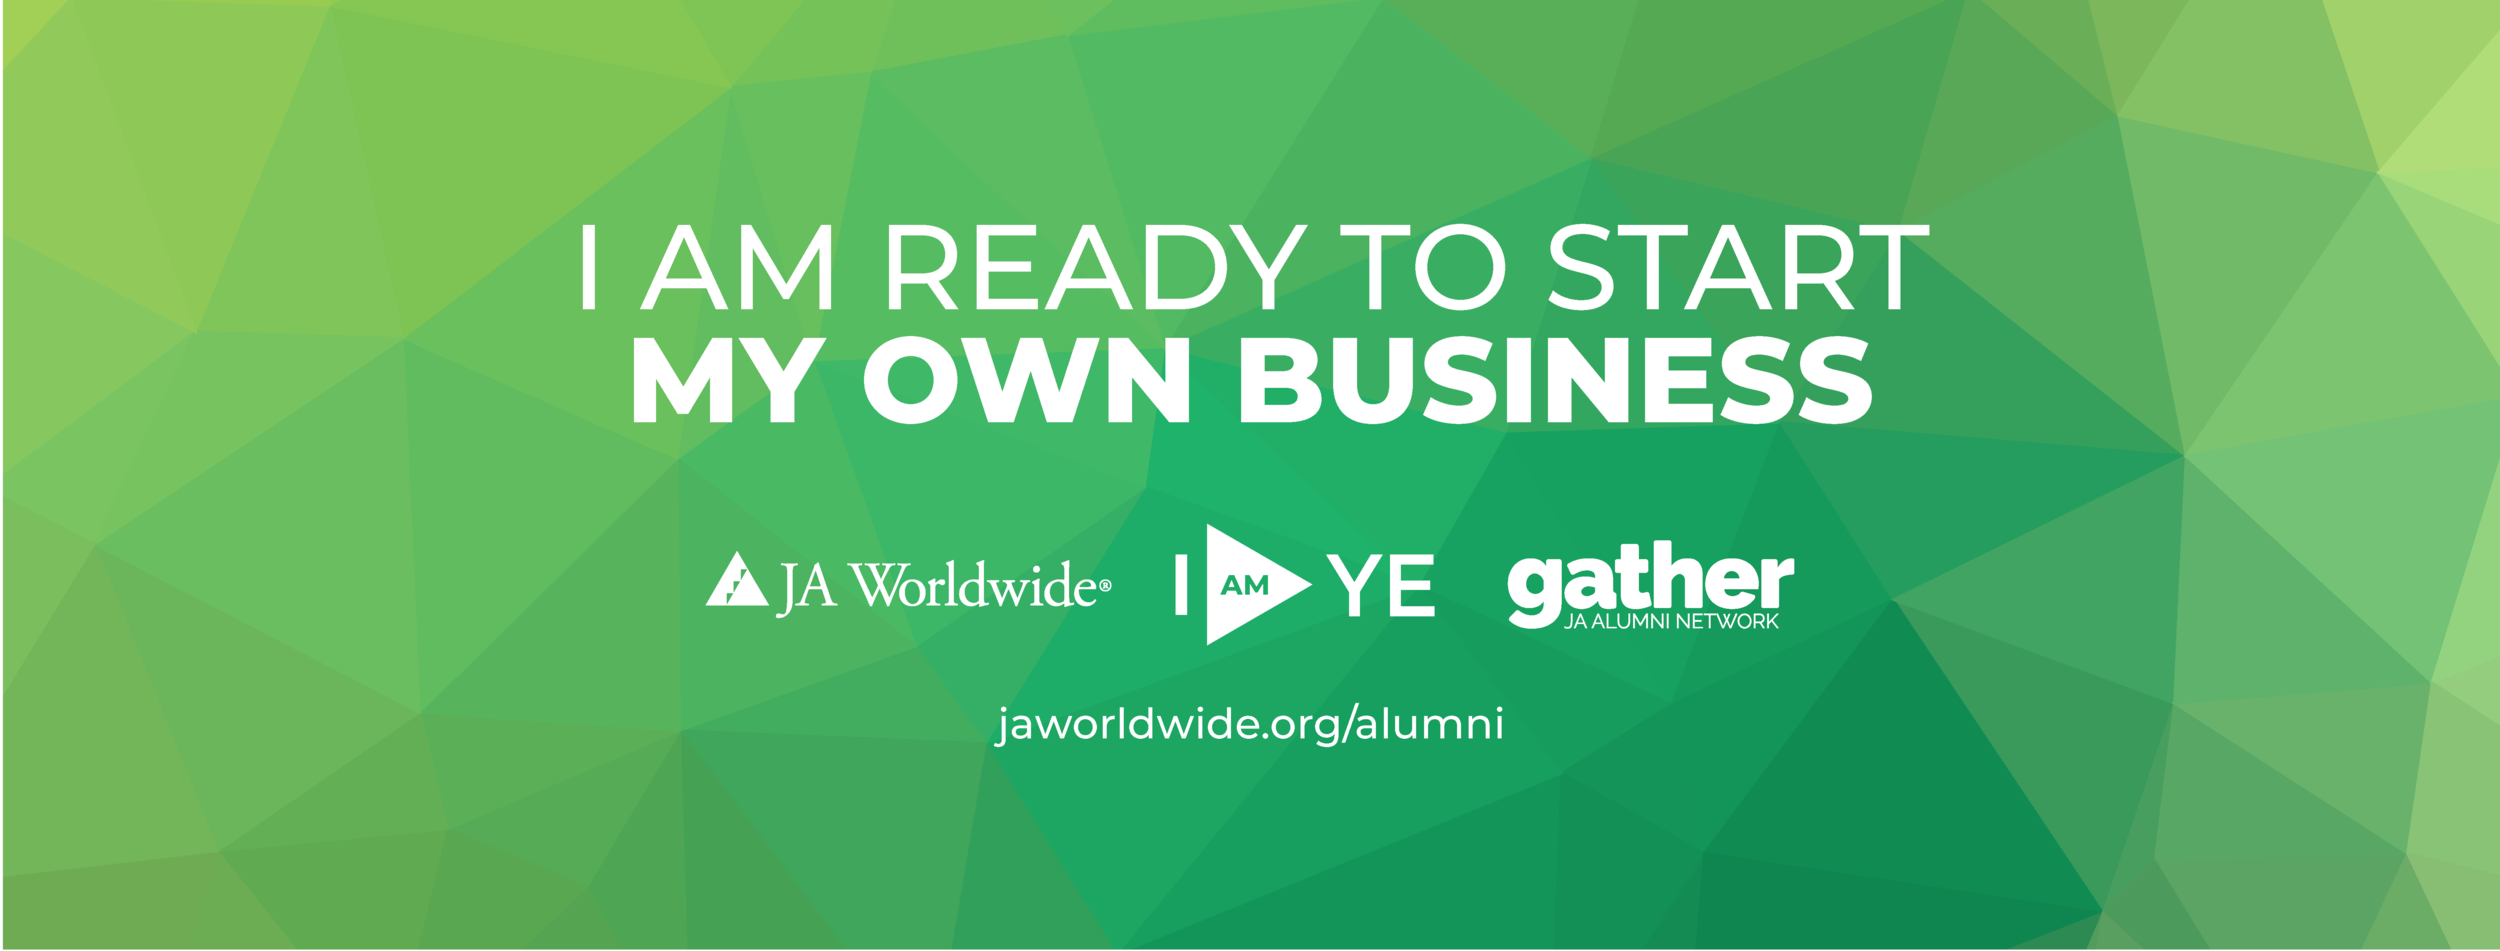 I am ready to start my own business-I am YE-Facebook banner.png